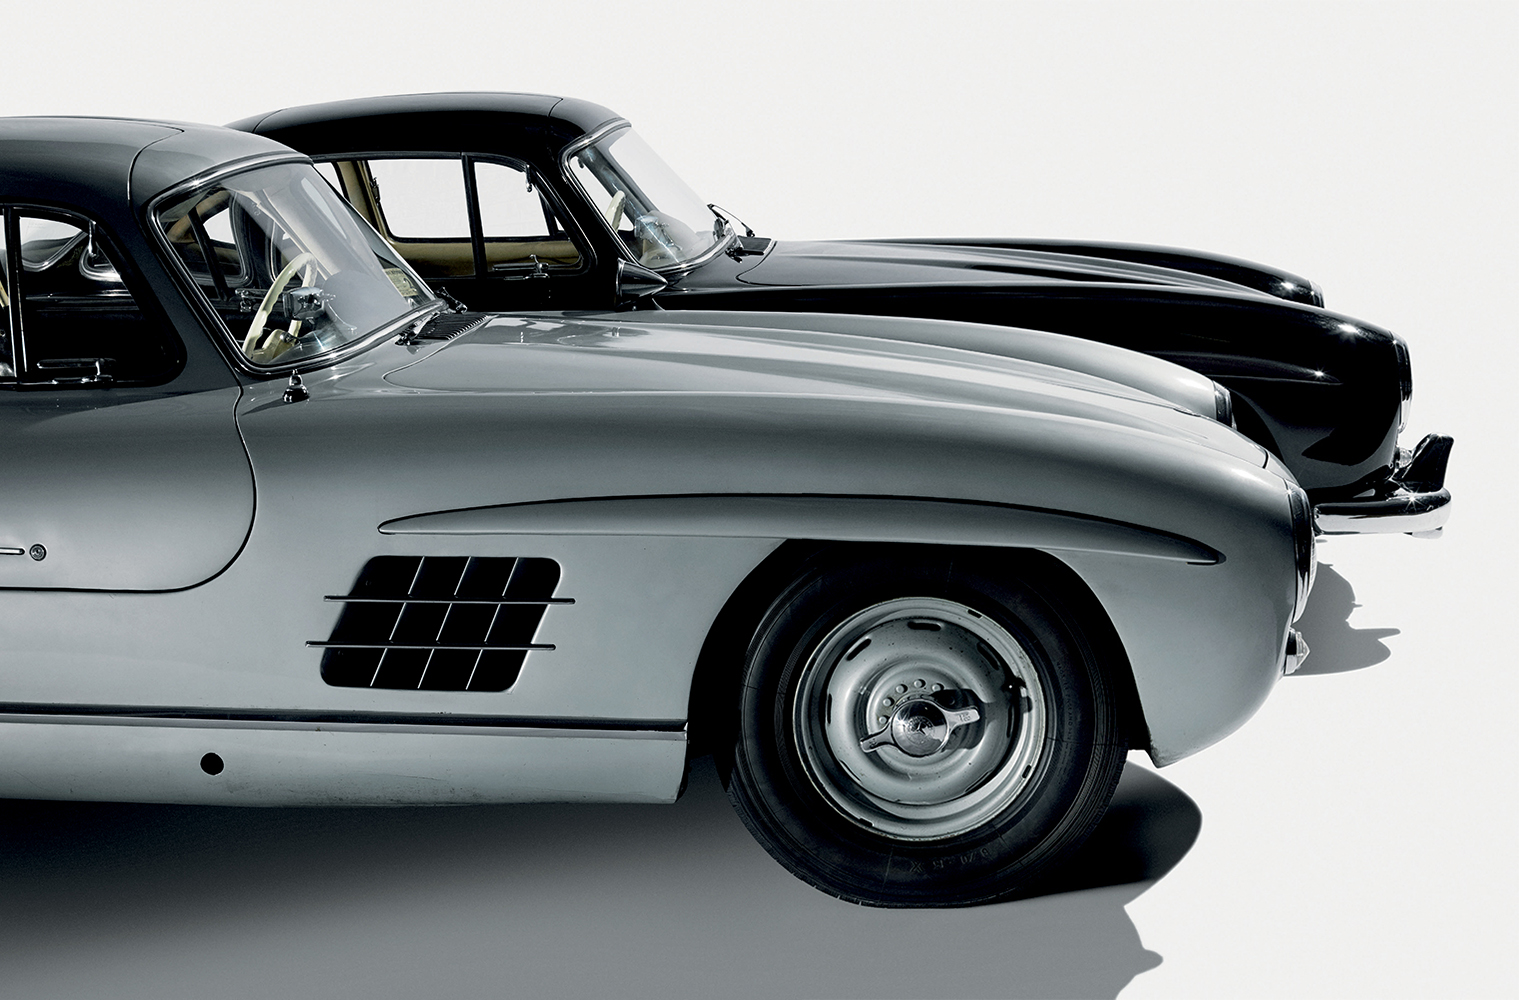 1956 MERCEDES-BENZ 300SL GULLWING COUPE Photographed at the Simeone Foundation Automotive Museum, December 2014